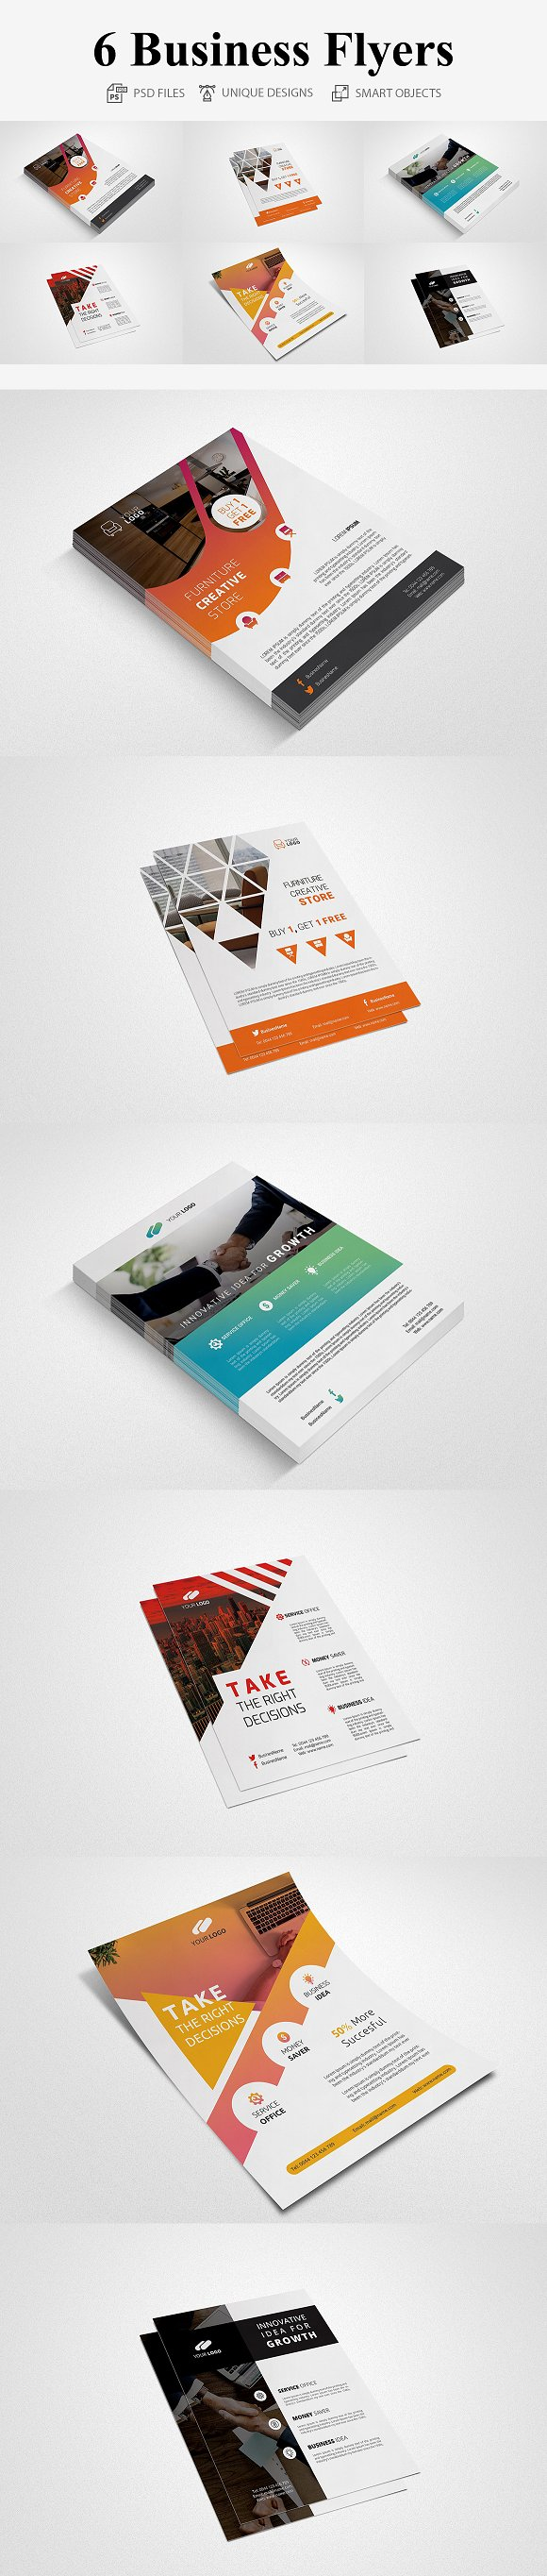 Business Flyers - 6 Templates